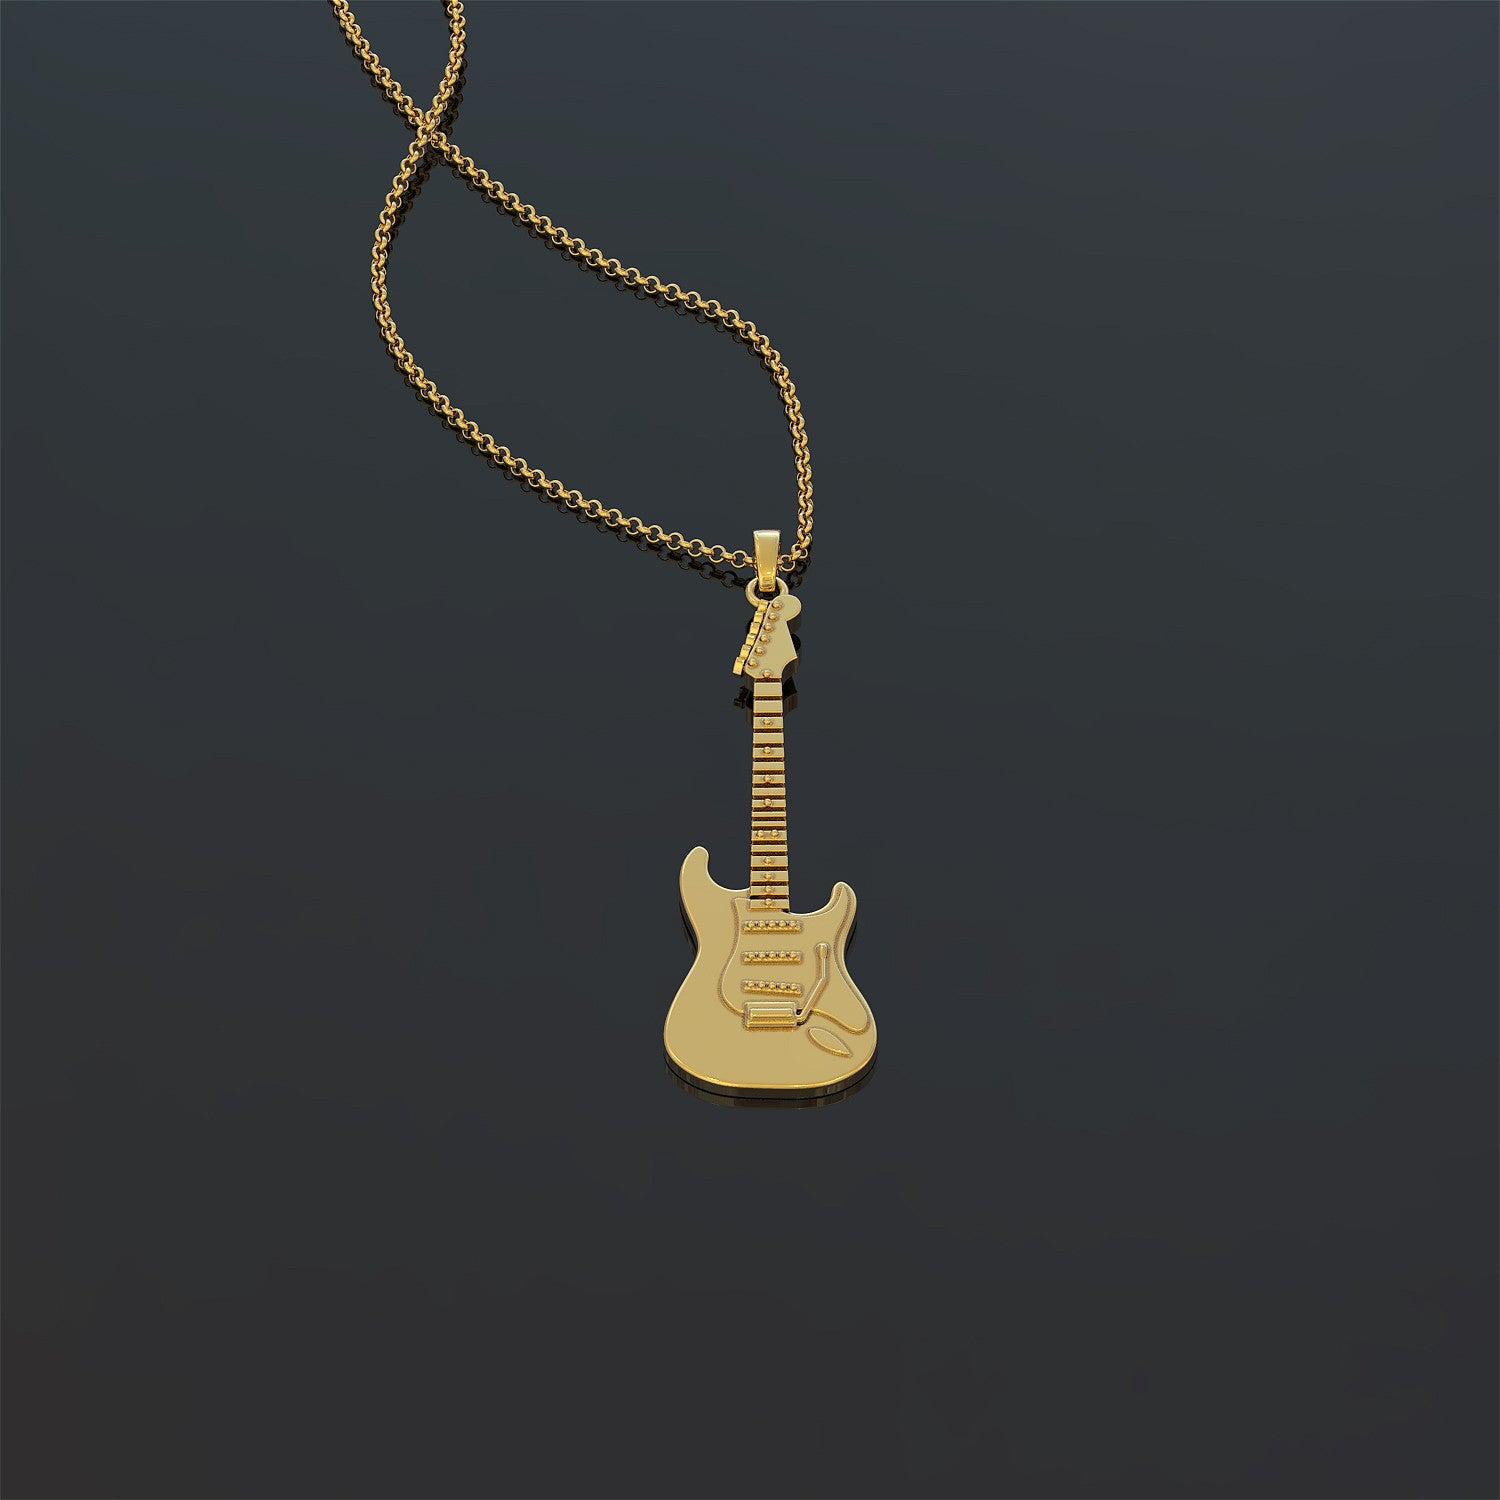 Stratocaster Necklace